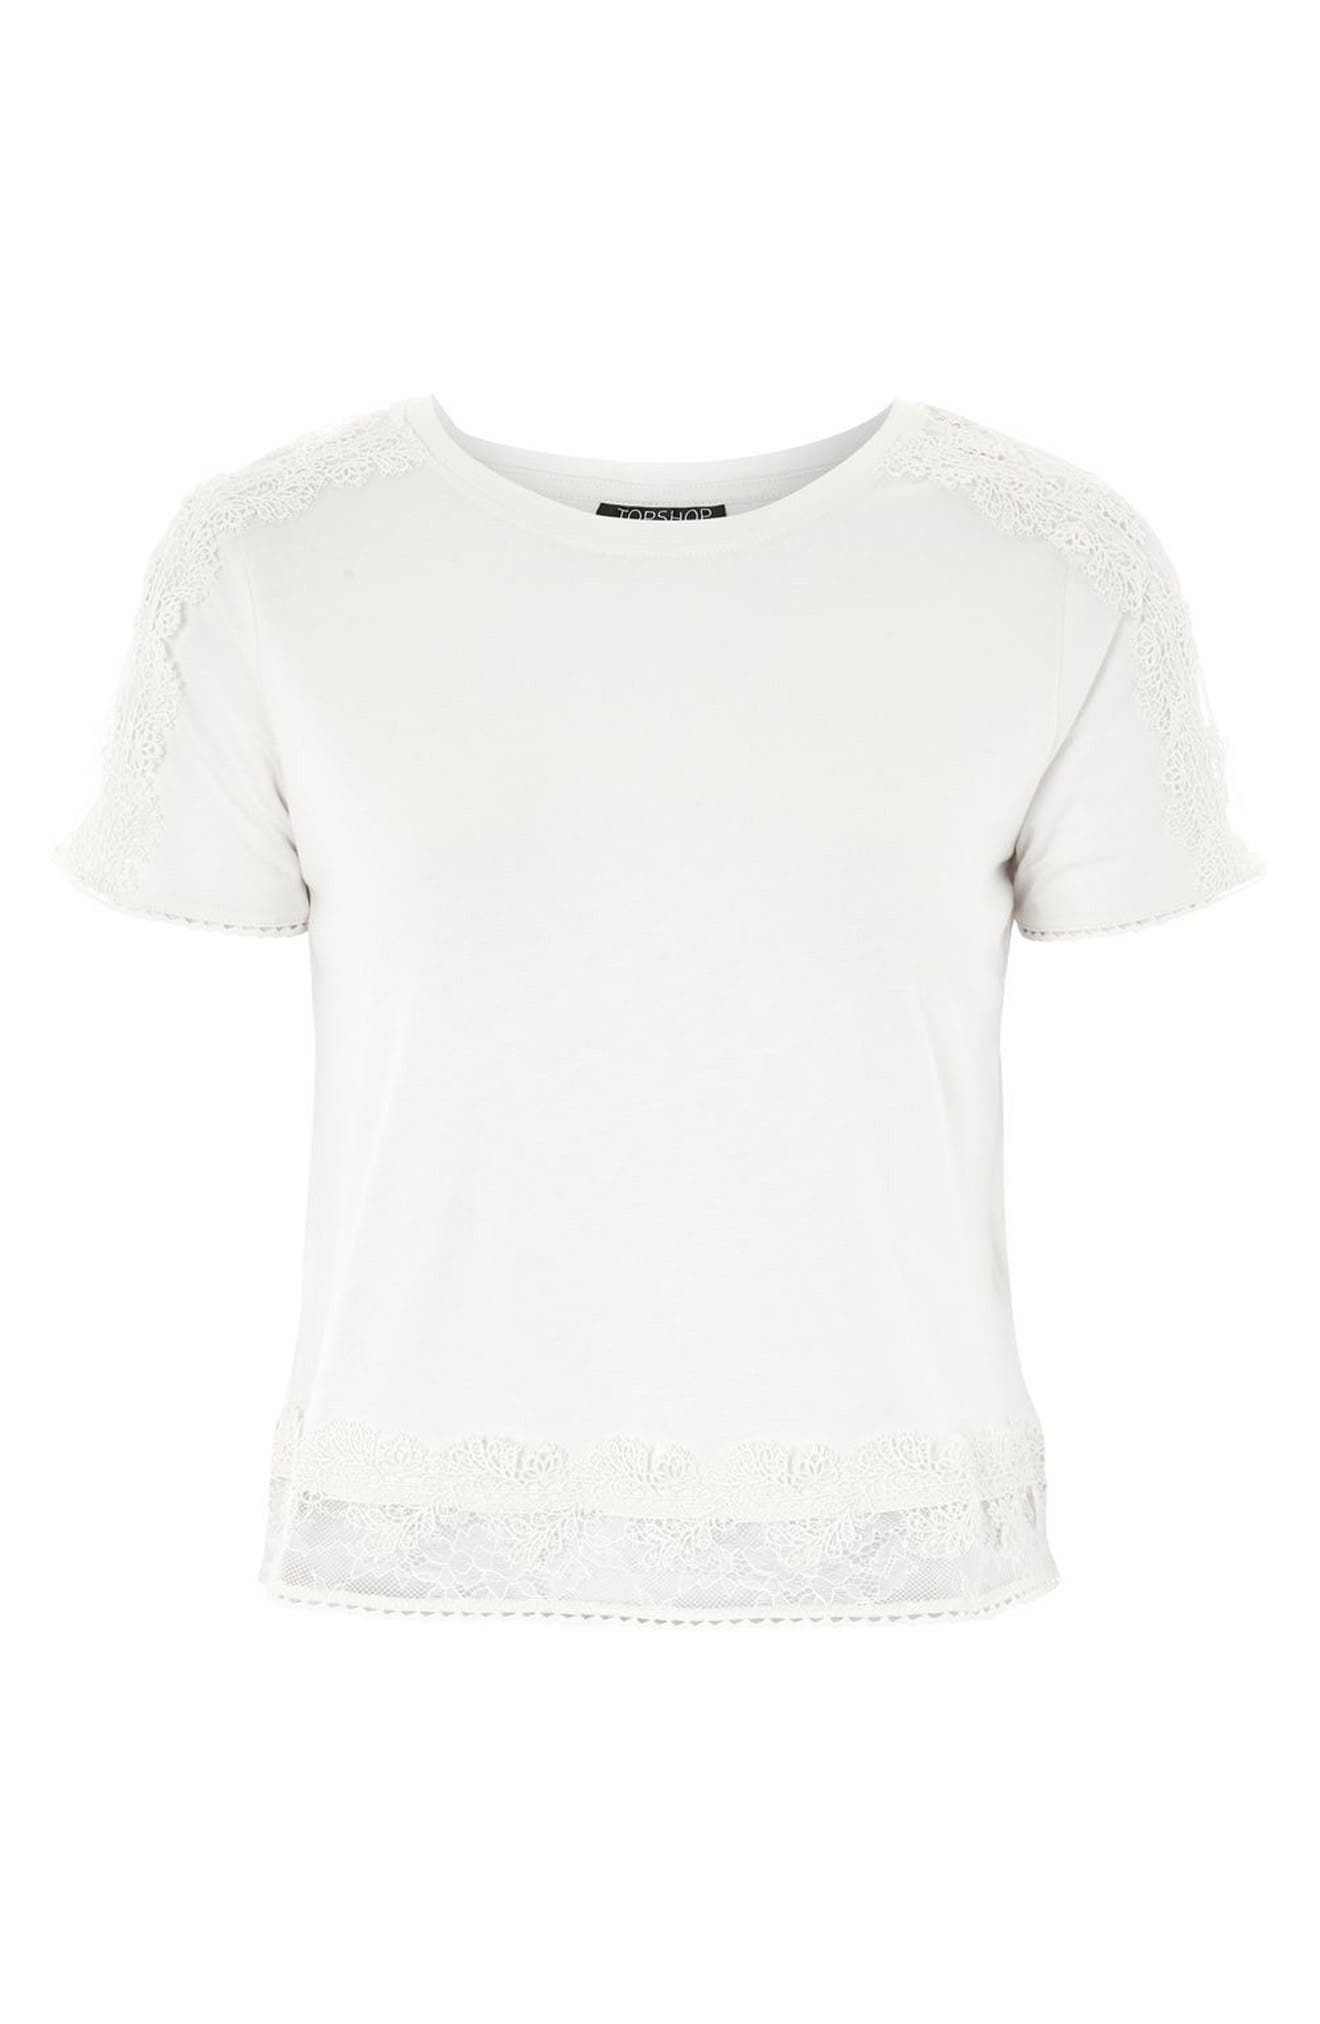 TOPSHOP,                             Lace Trim Tee,                             Alternate thumbnail 4, color,                             900